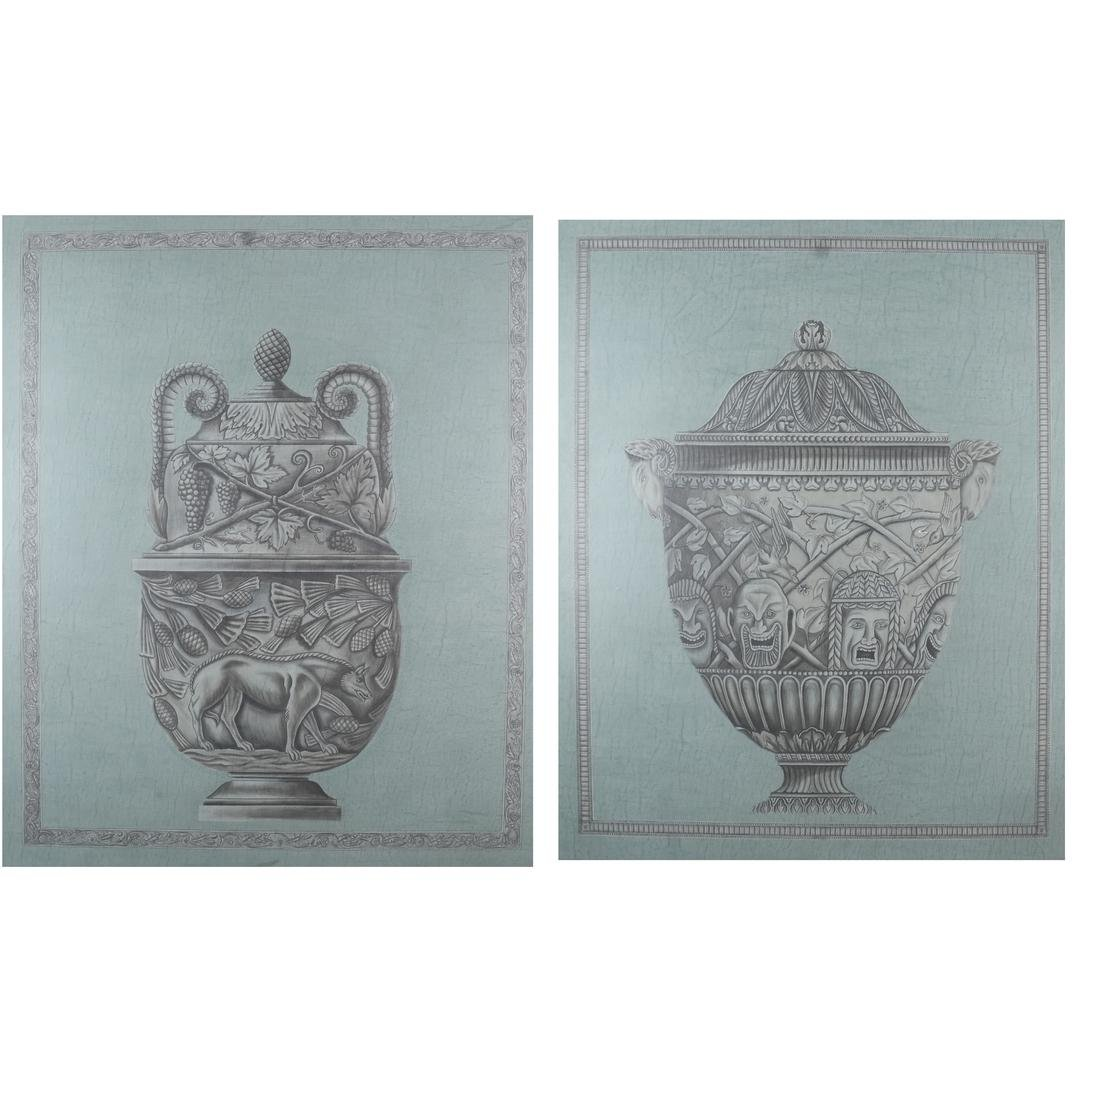 Pair of Decorated Panels - Urns